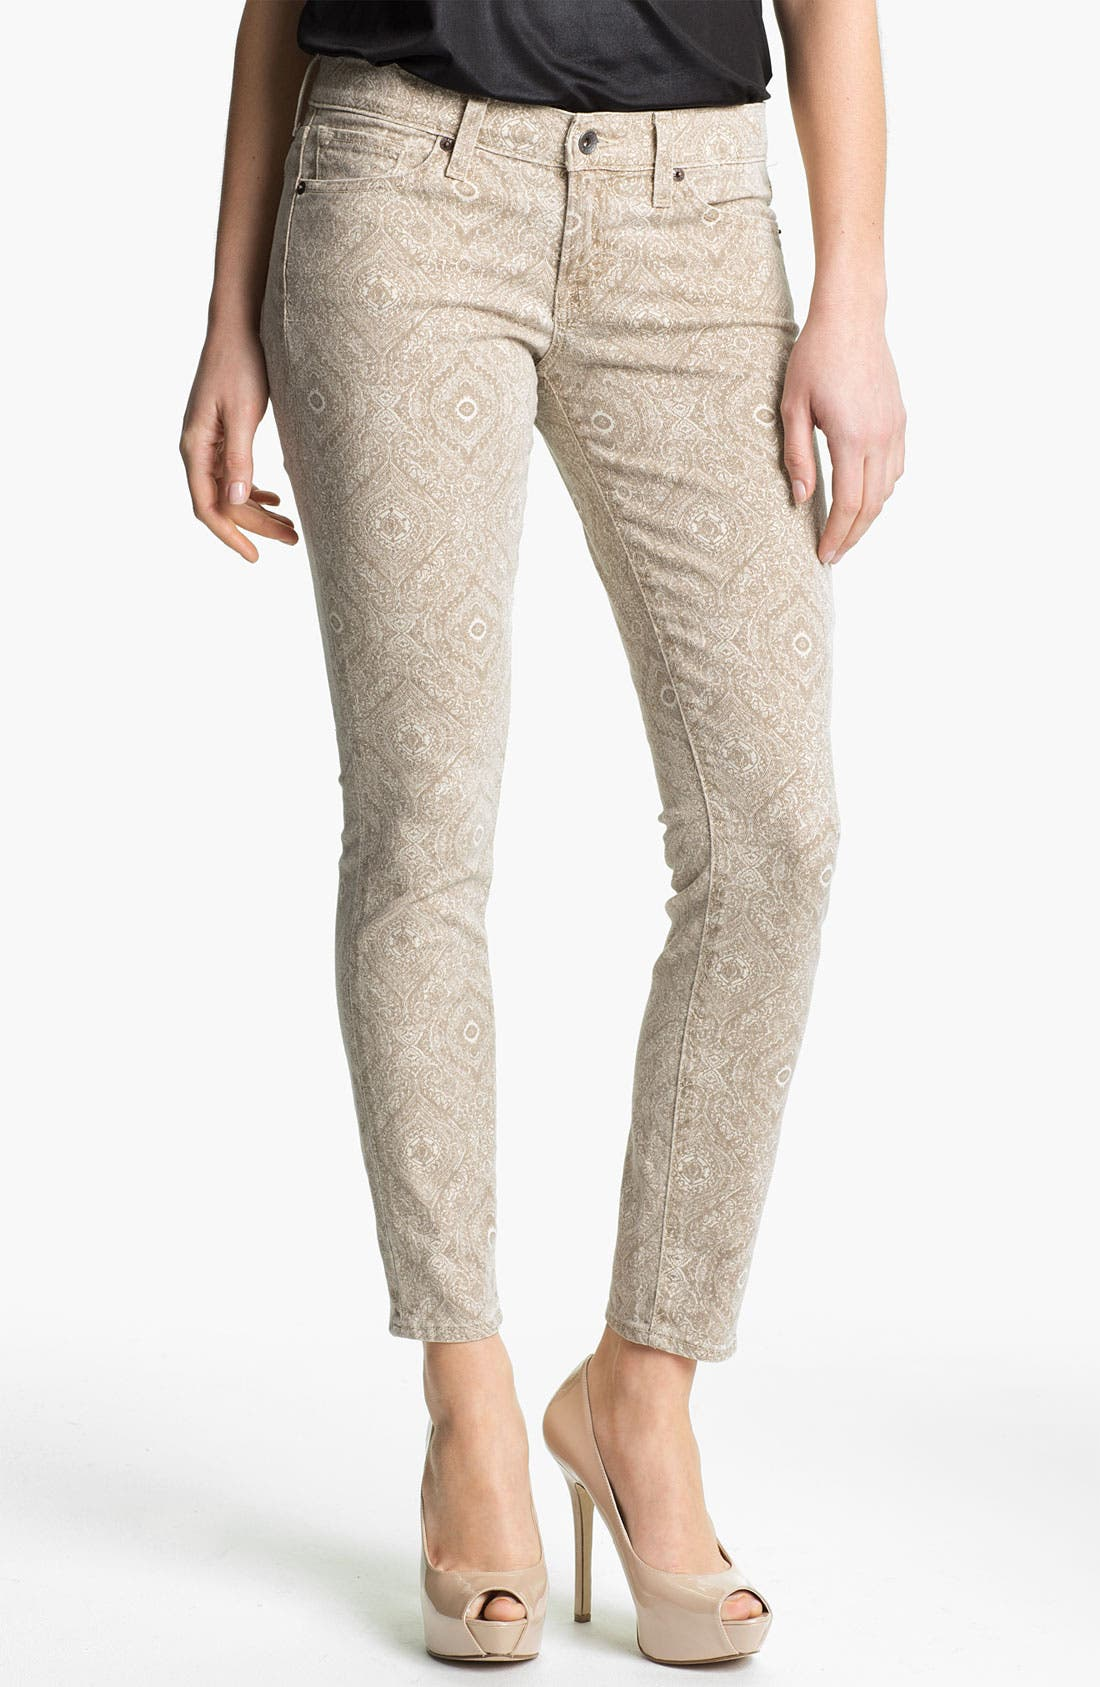 Alternate Image 1 Selected - Lucky Brand 'Charlie' Print Skinny Jeans (Online Exclusive)